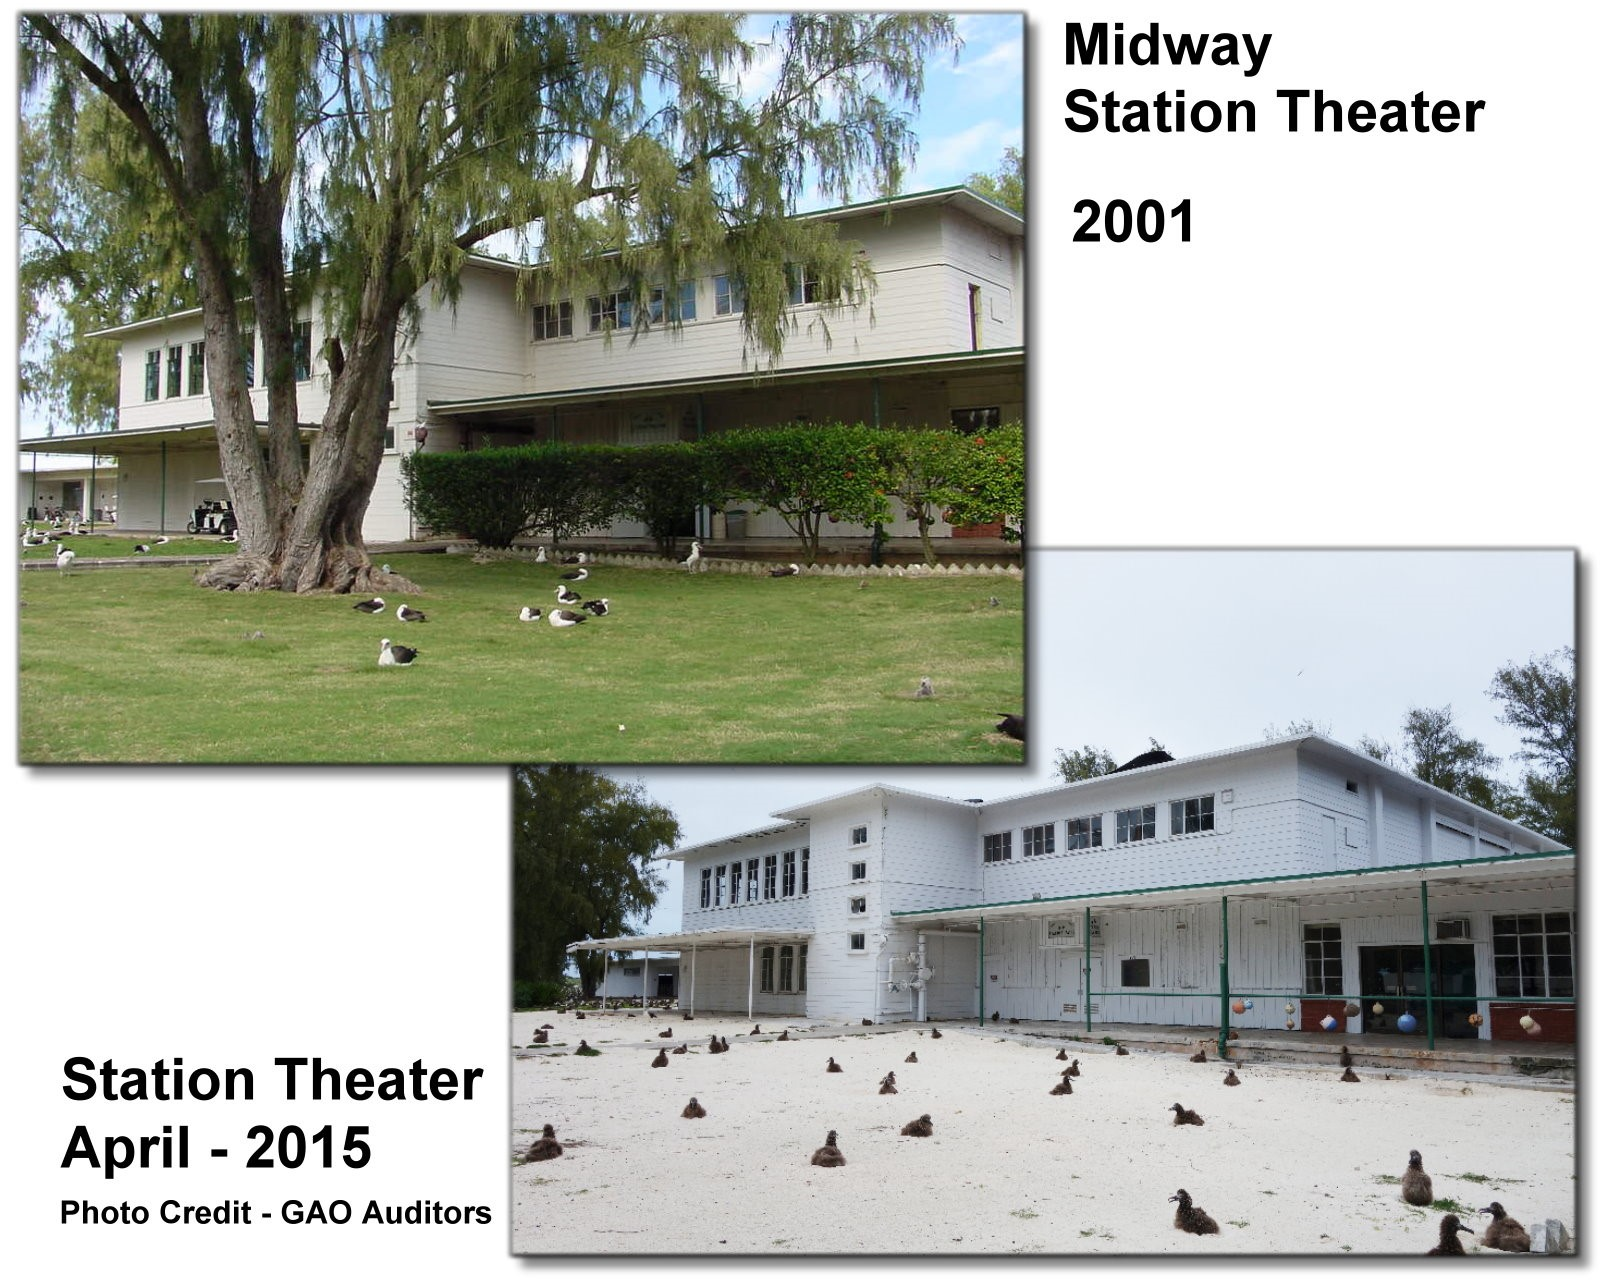 The theater was designed by the architect Albert Kahn and constructed before the Battle of Midway during World War II. It is  eligible for inclusion in the National Register of Historic Places. U.S. Fish & Wildlife Service officials said that the theater is not in use. Six murals were removed from the theater and sent to the Pacific Aviation Museum for preservation and display.